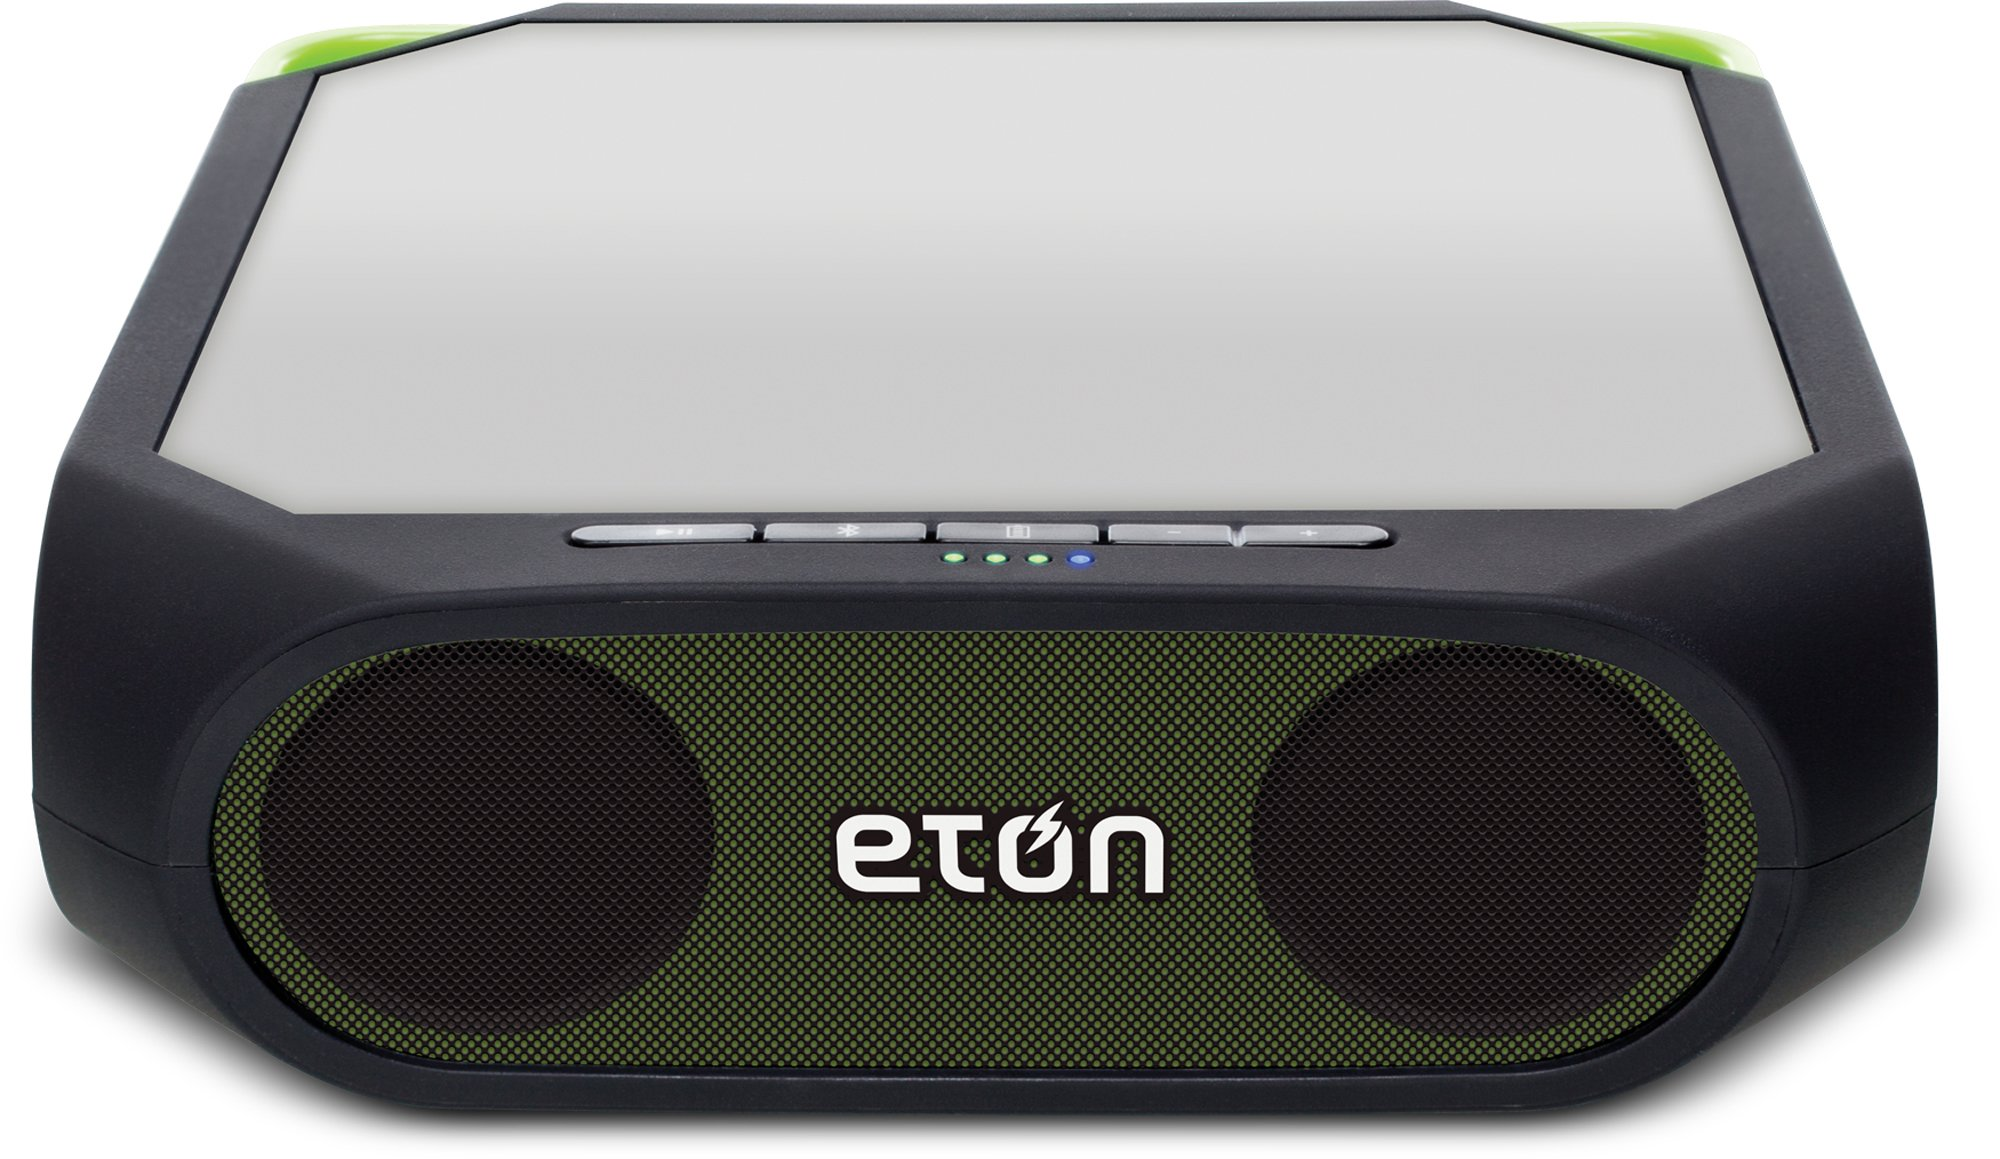 Eton Rugged Rukus Solar-powered, Bluetooth, smartphone-charging speaker, Green, NRKS200GR by Eton